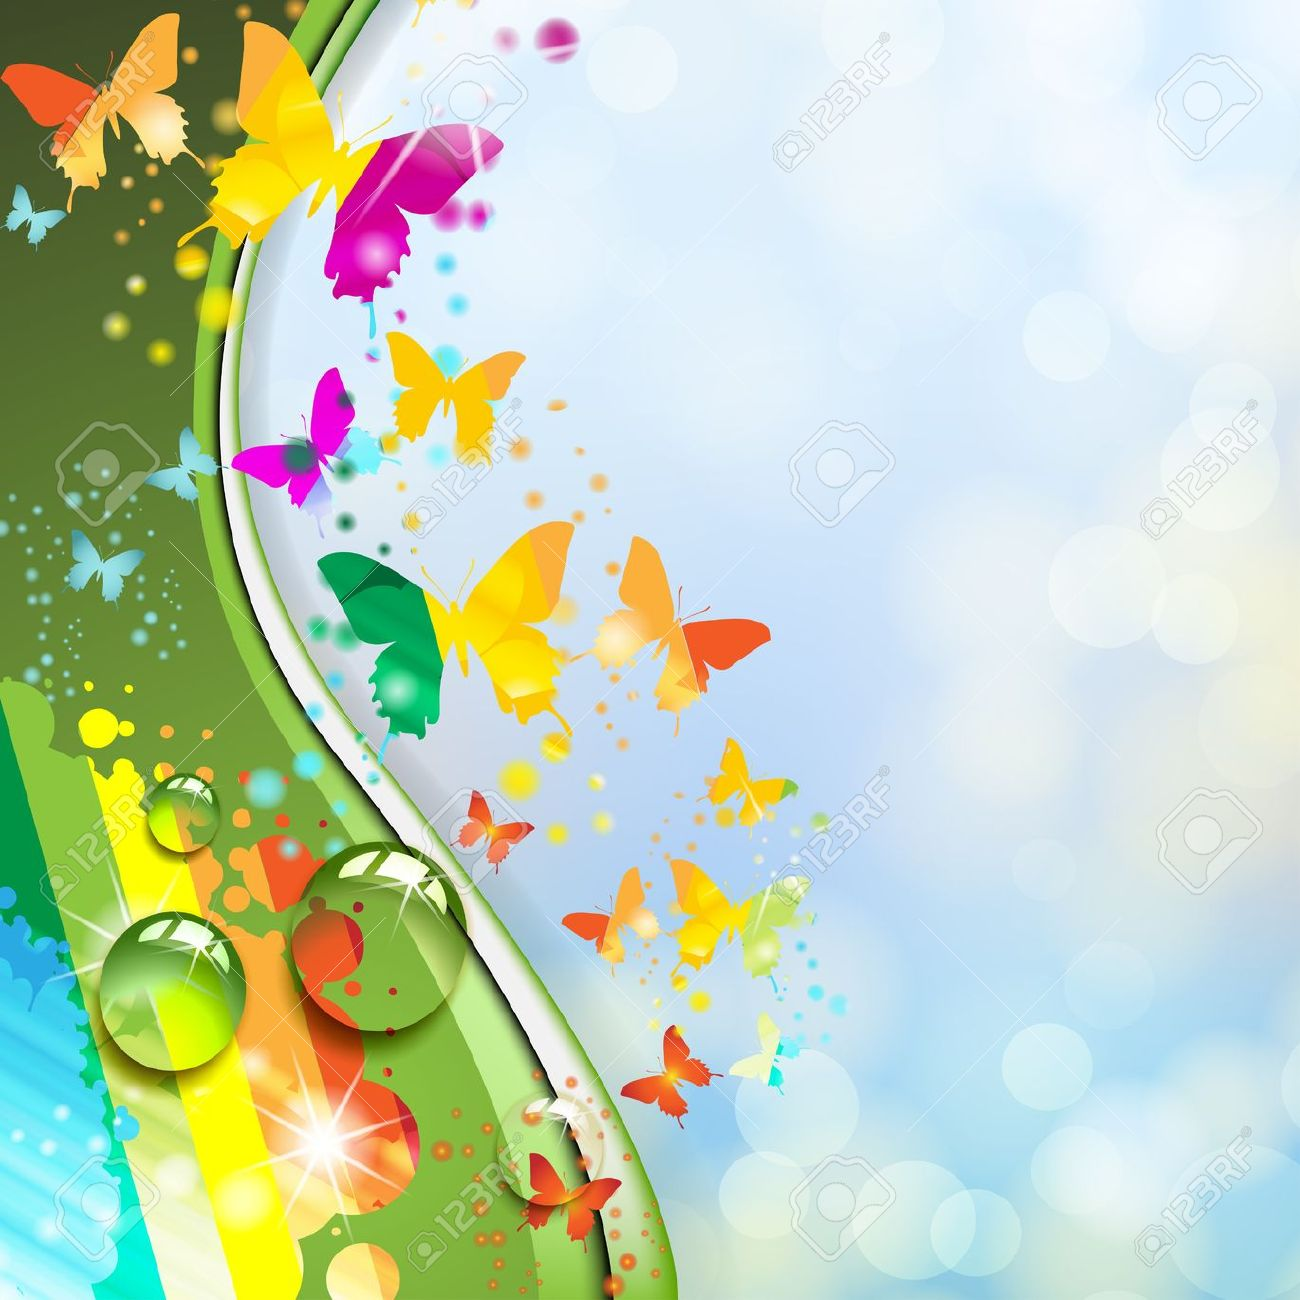 Cute Butterflies Hd Wallpapers Download Colorful Butterfly Wallpaper Gallery